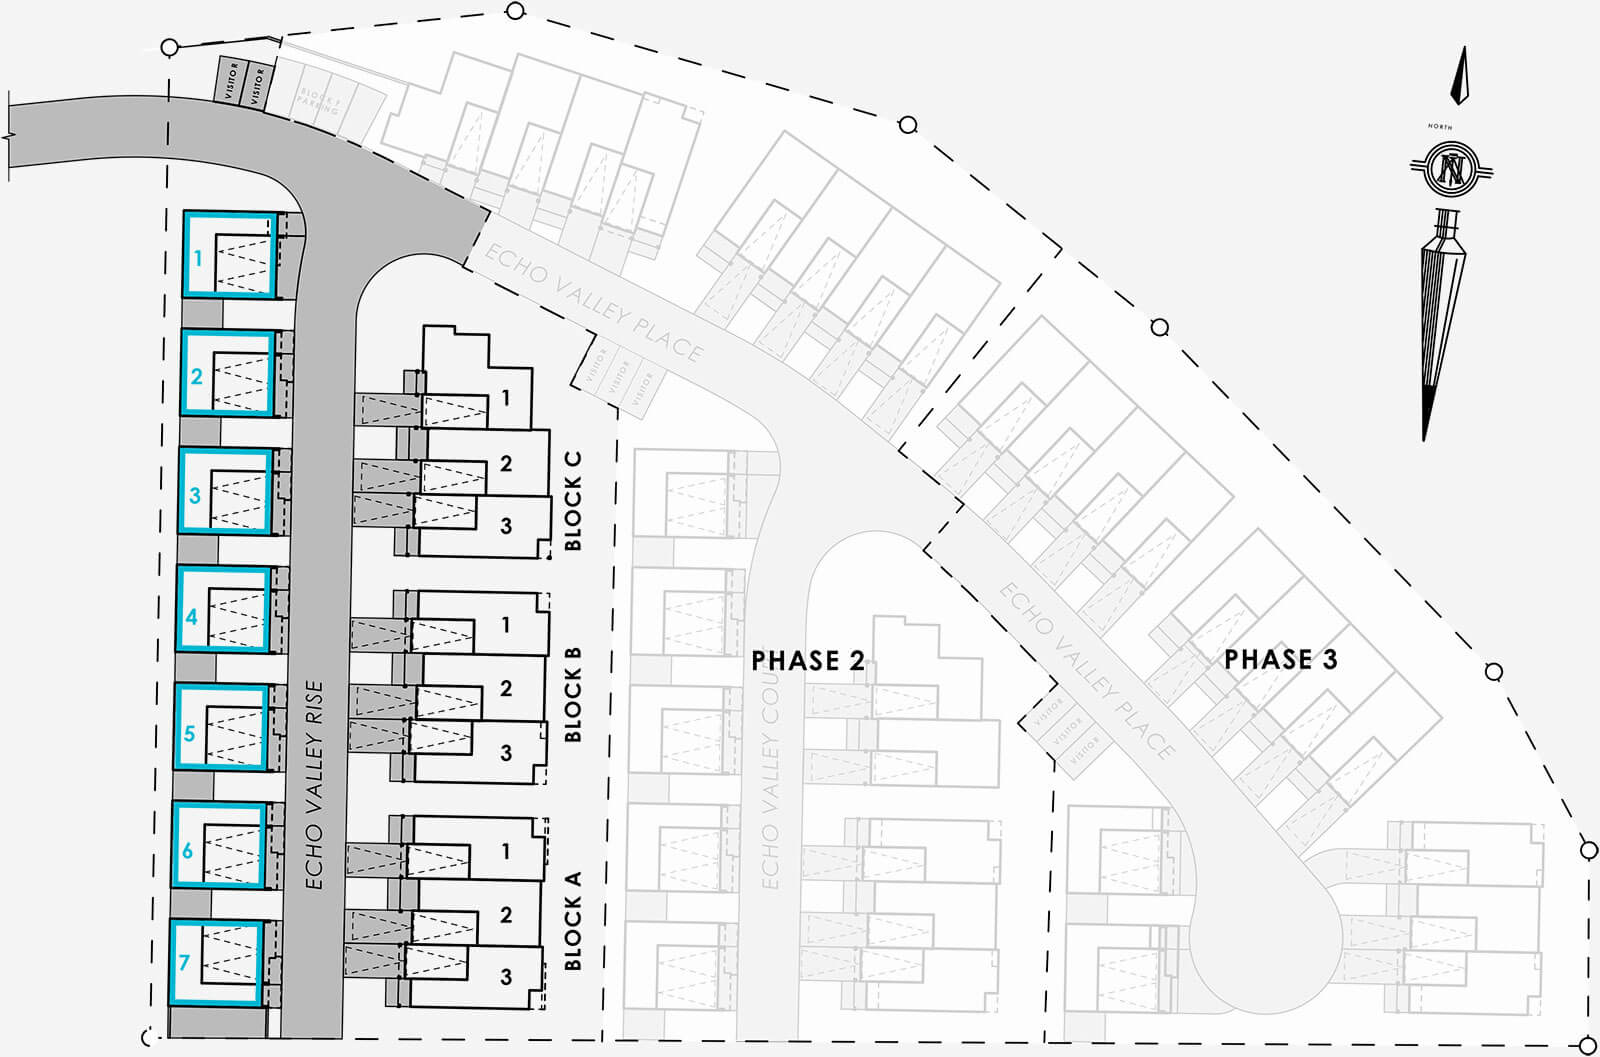 Detached Homes Site Map